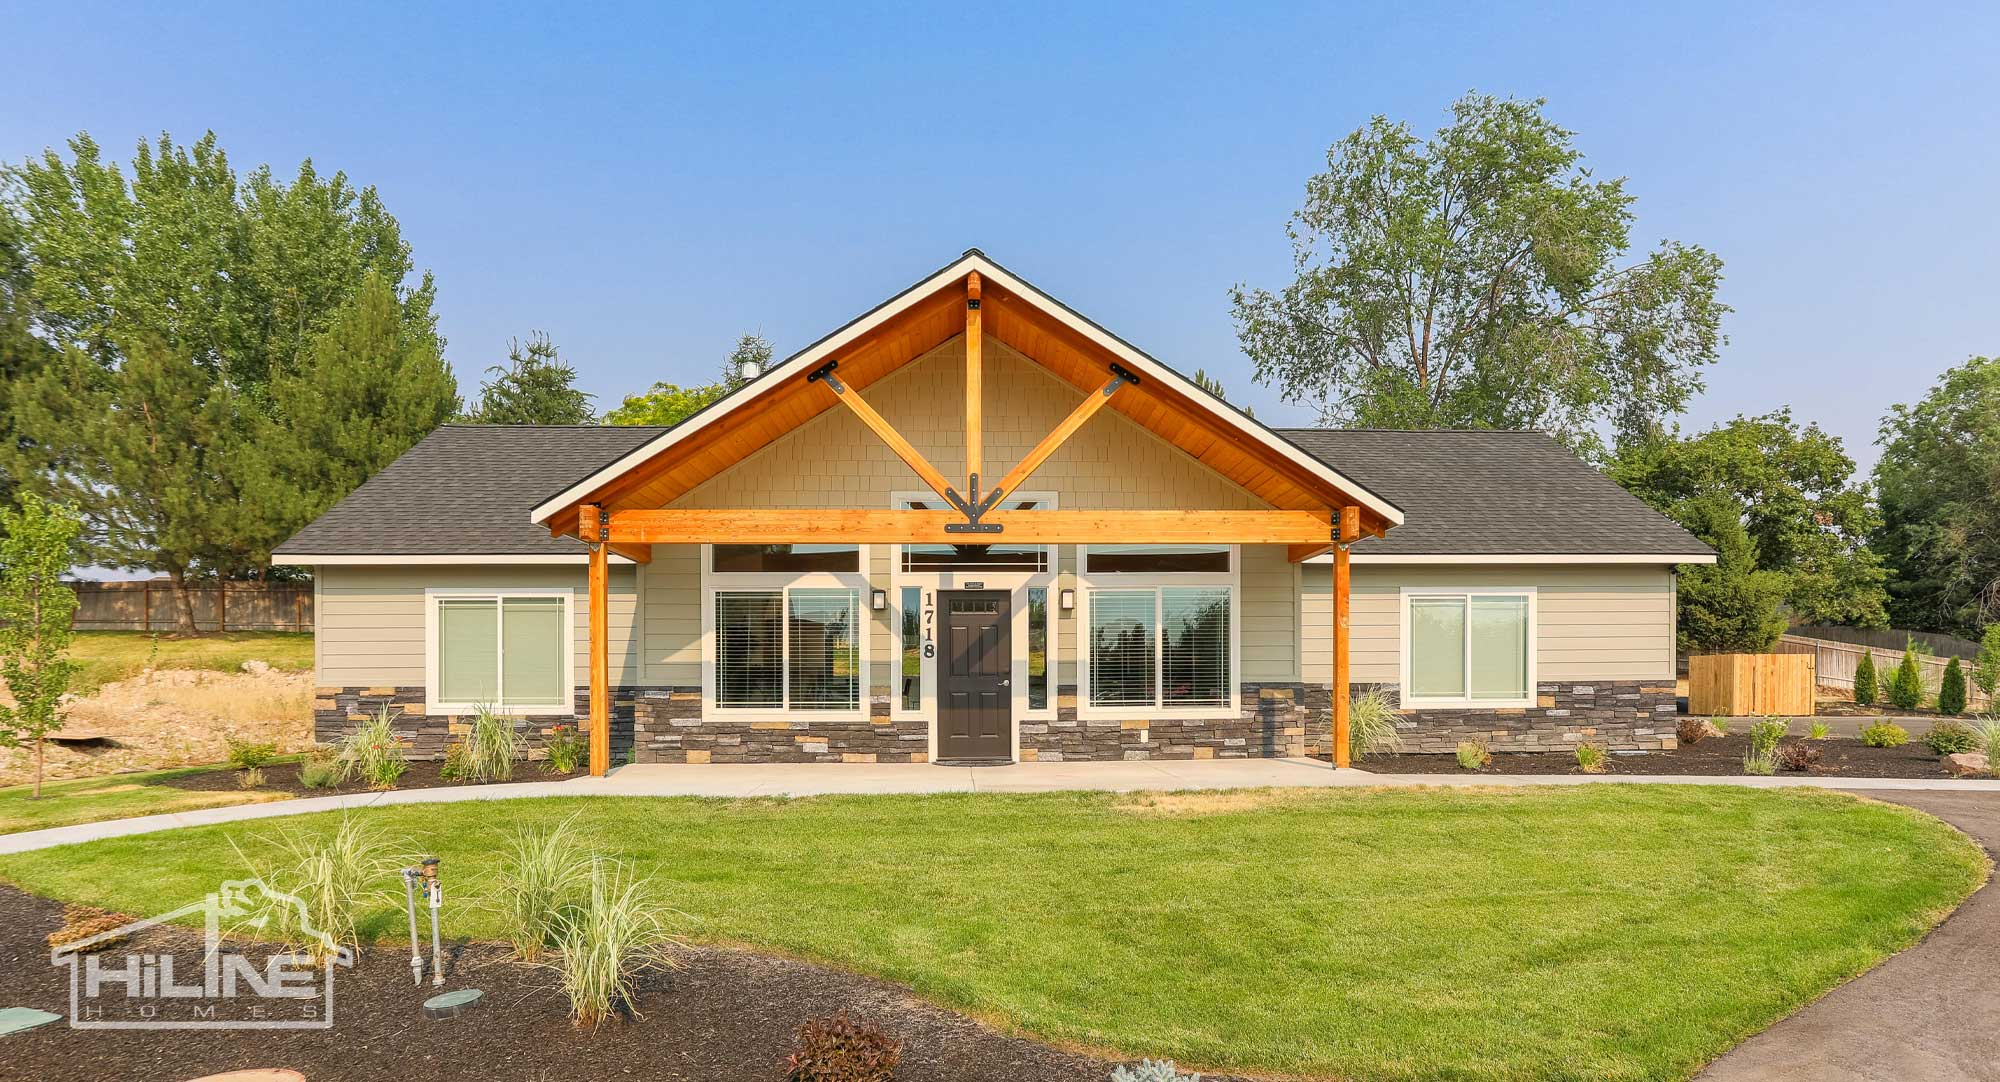 Image of HiLine Homes of Meridian Front Exterior